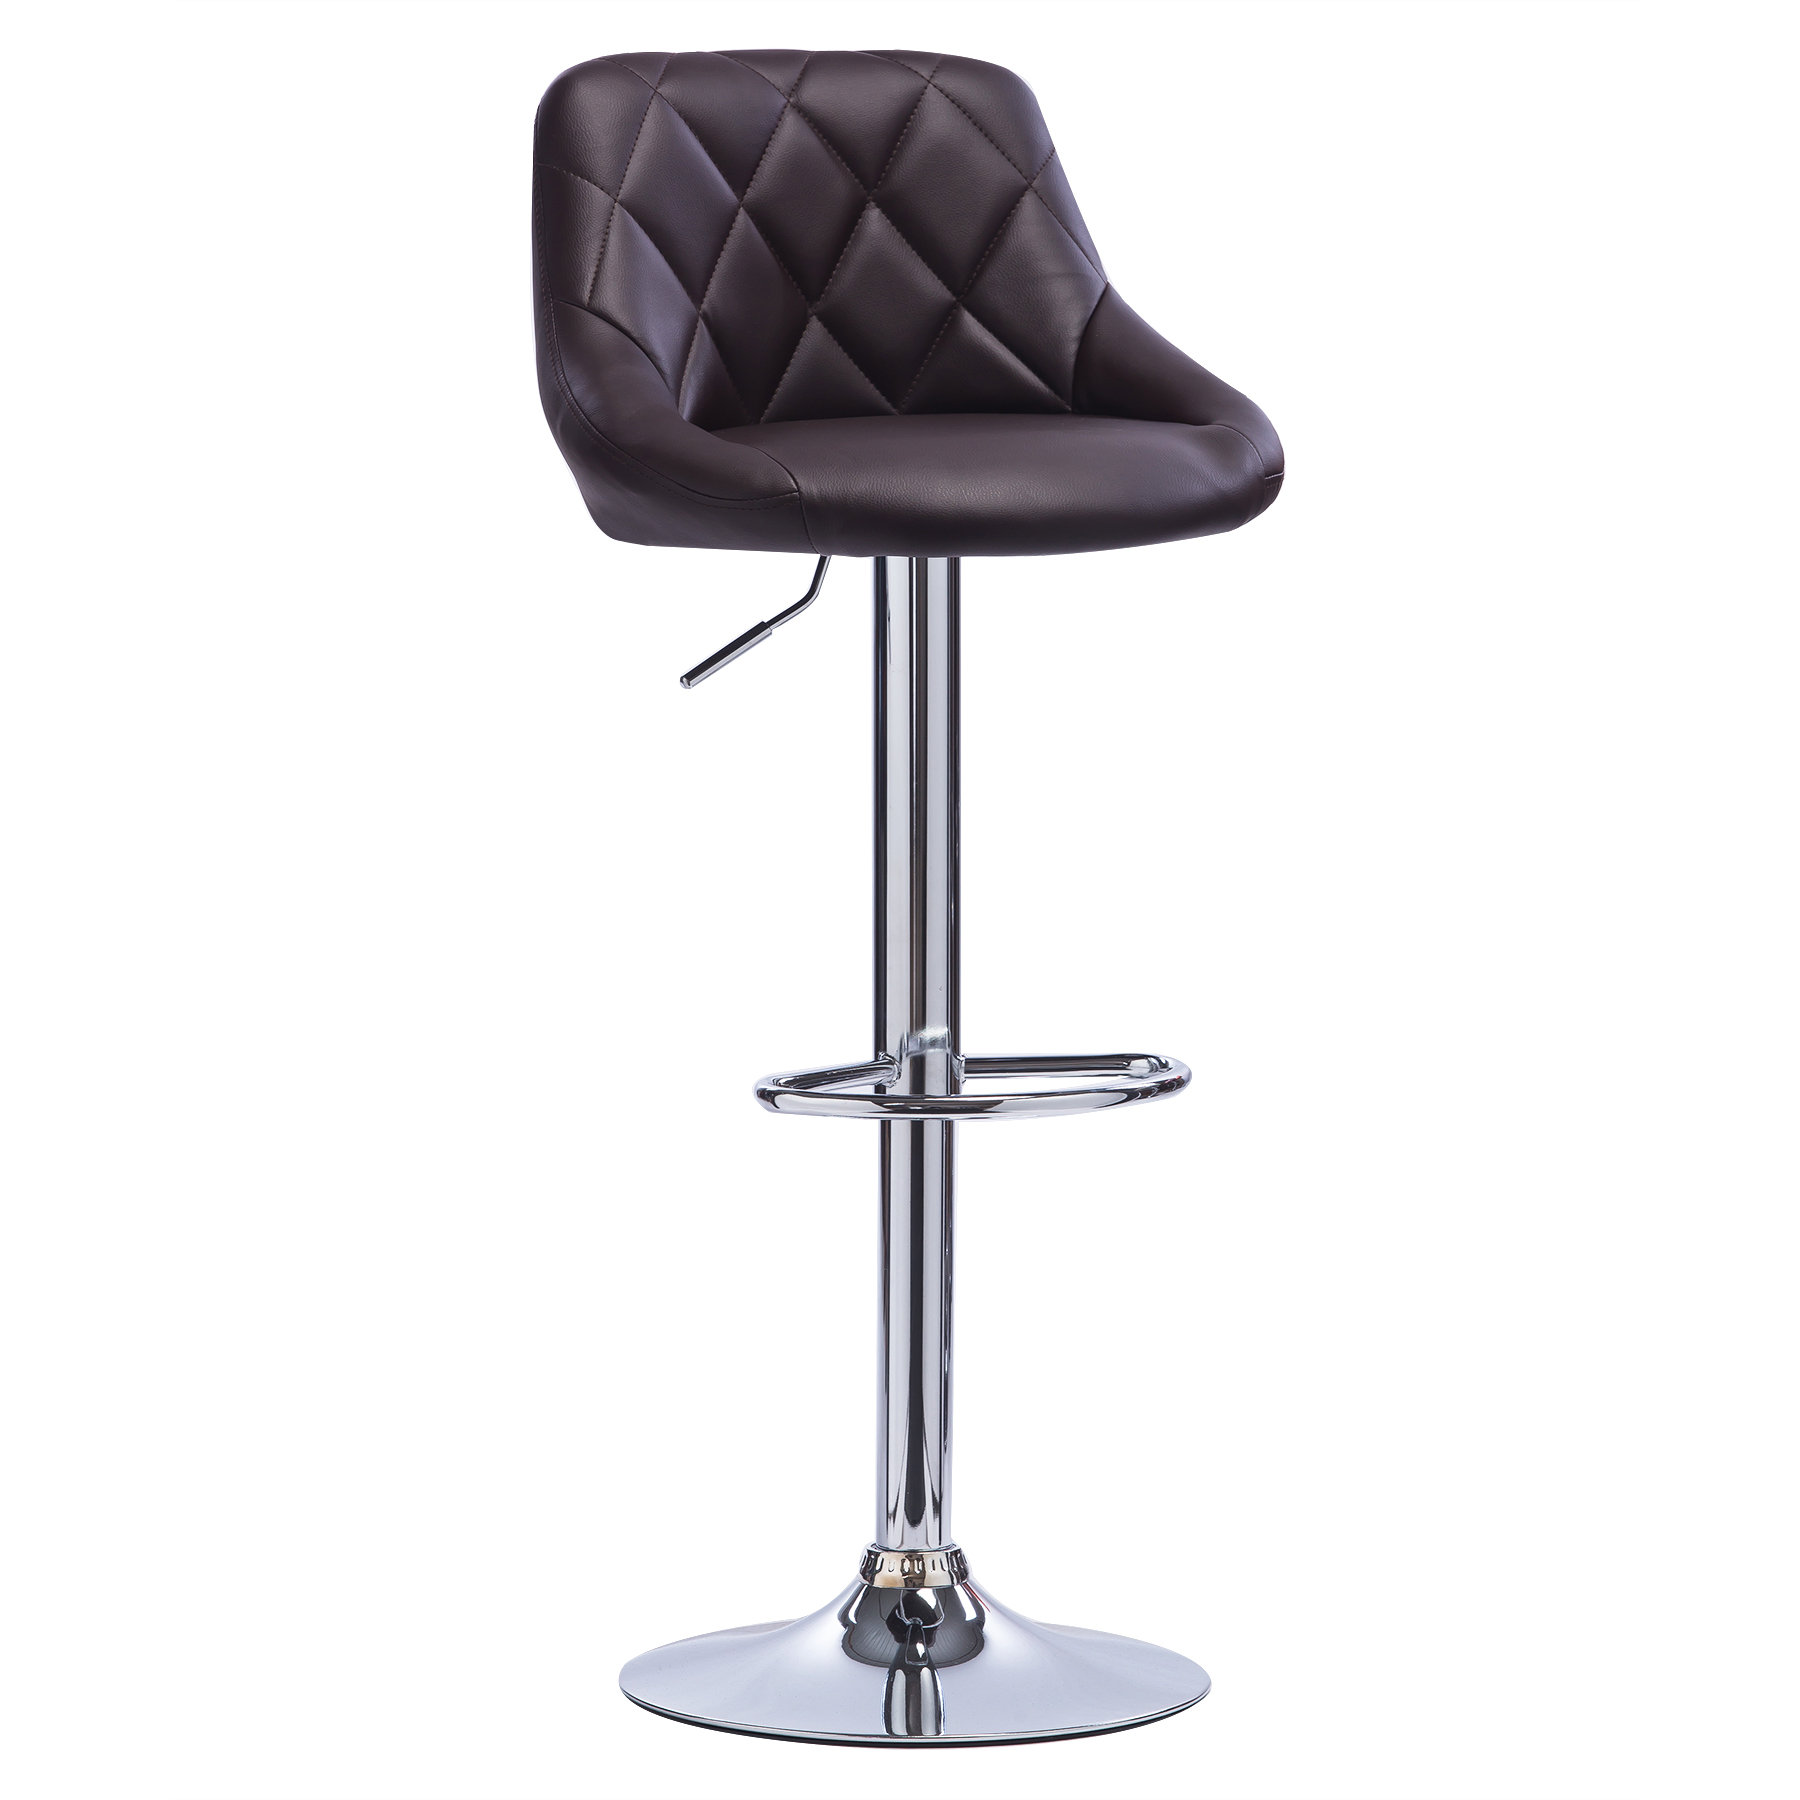 1 pcs bar stools swivel kitchen breakfast stool chair chrome faux leather u015 ebay. Black Bedroom Furniture Sets. Home Design Ideas